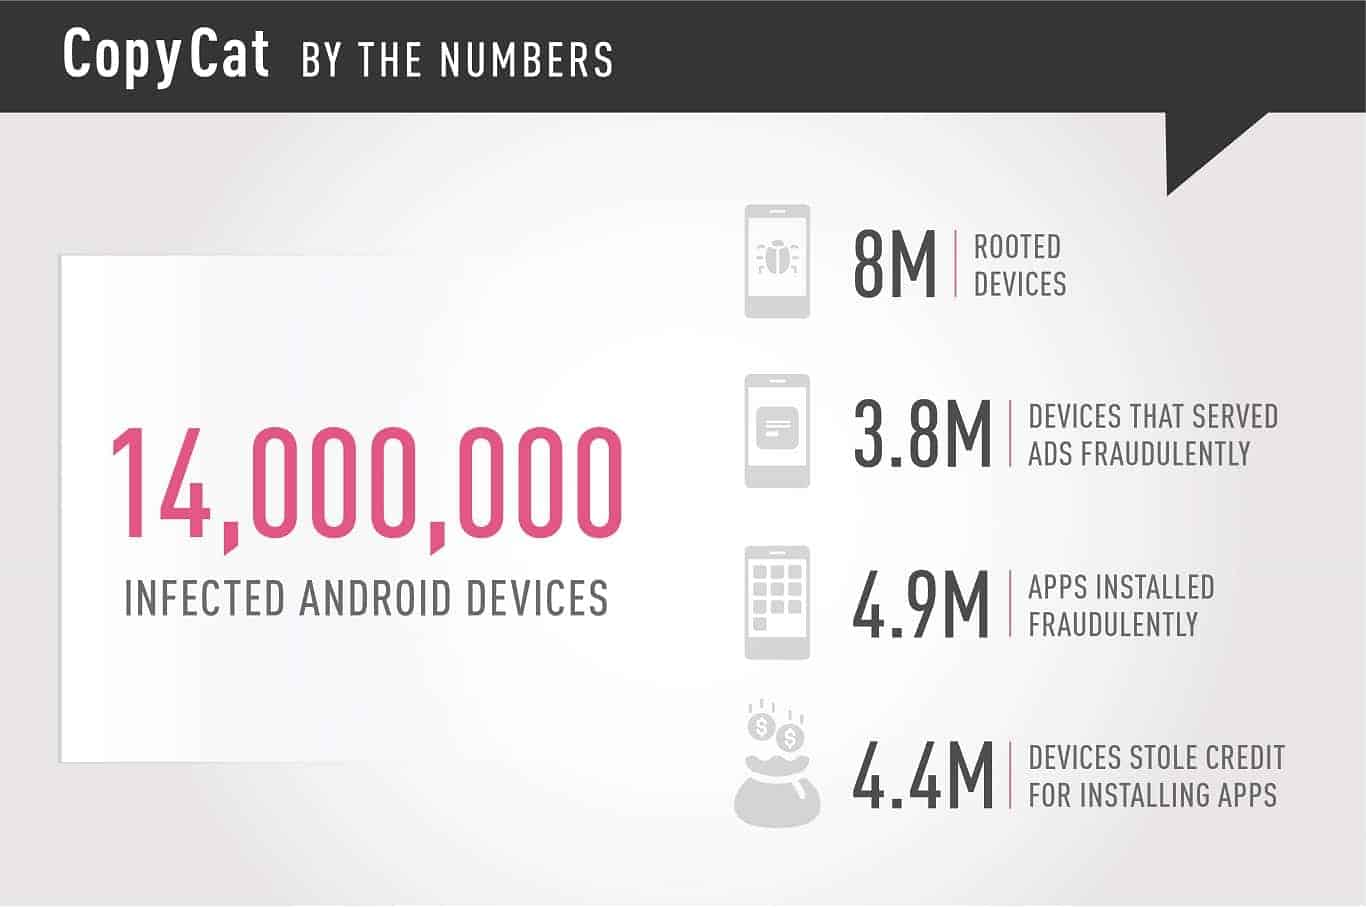 CopyCat Malware Total Number Of Devices